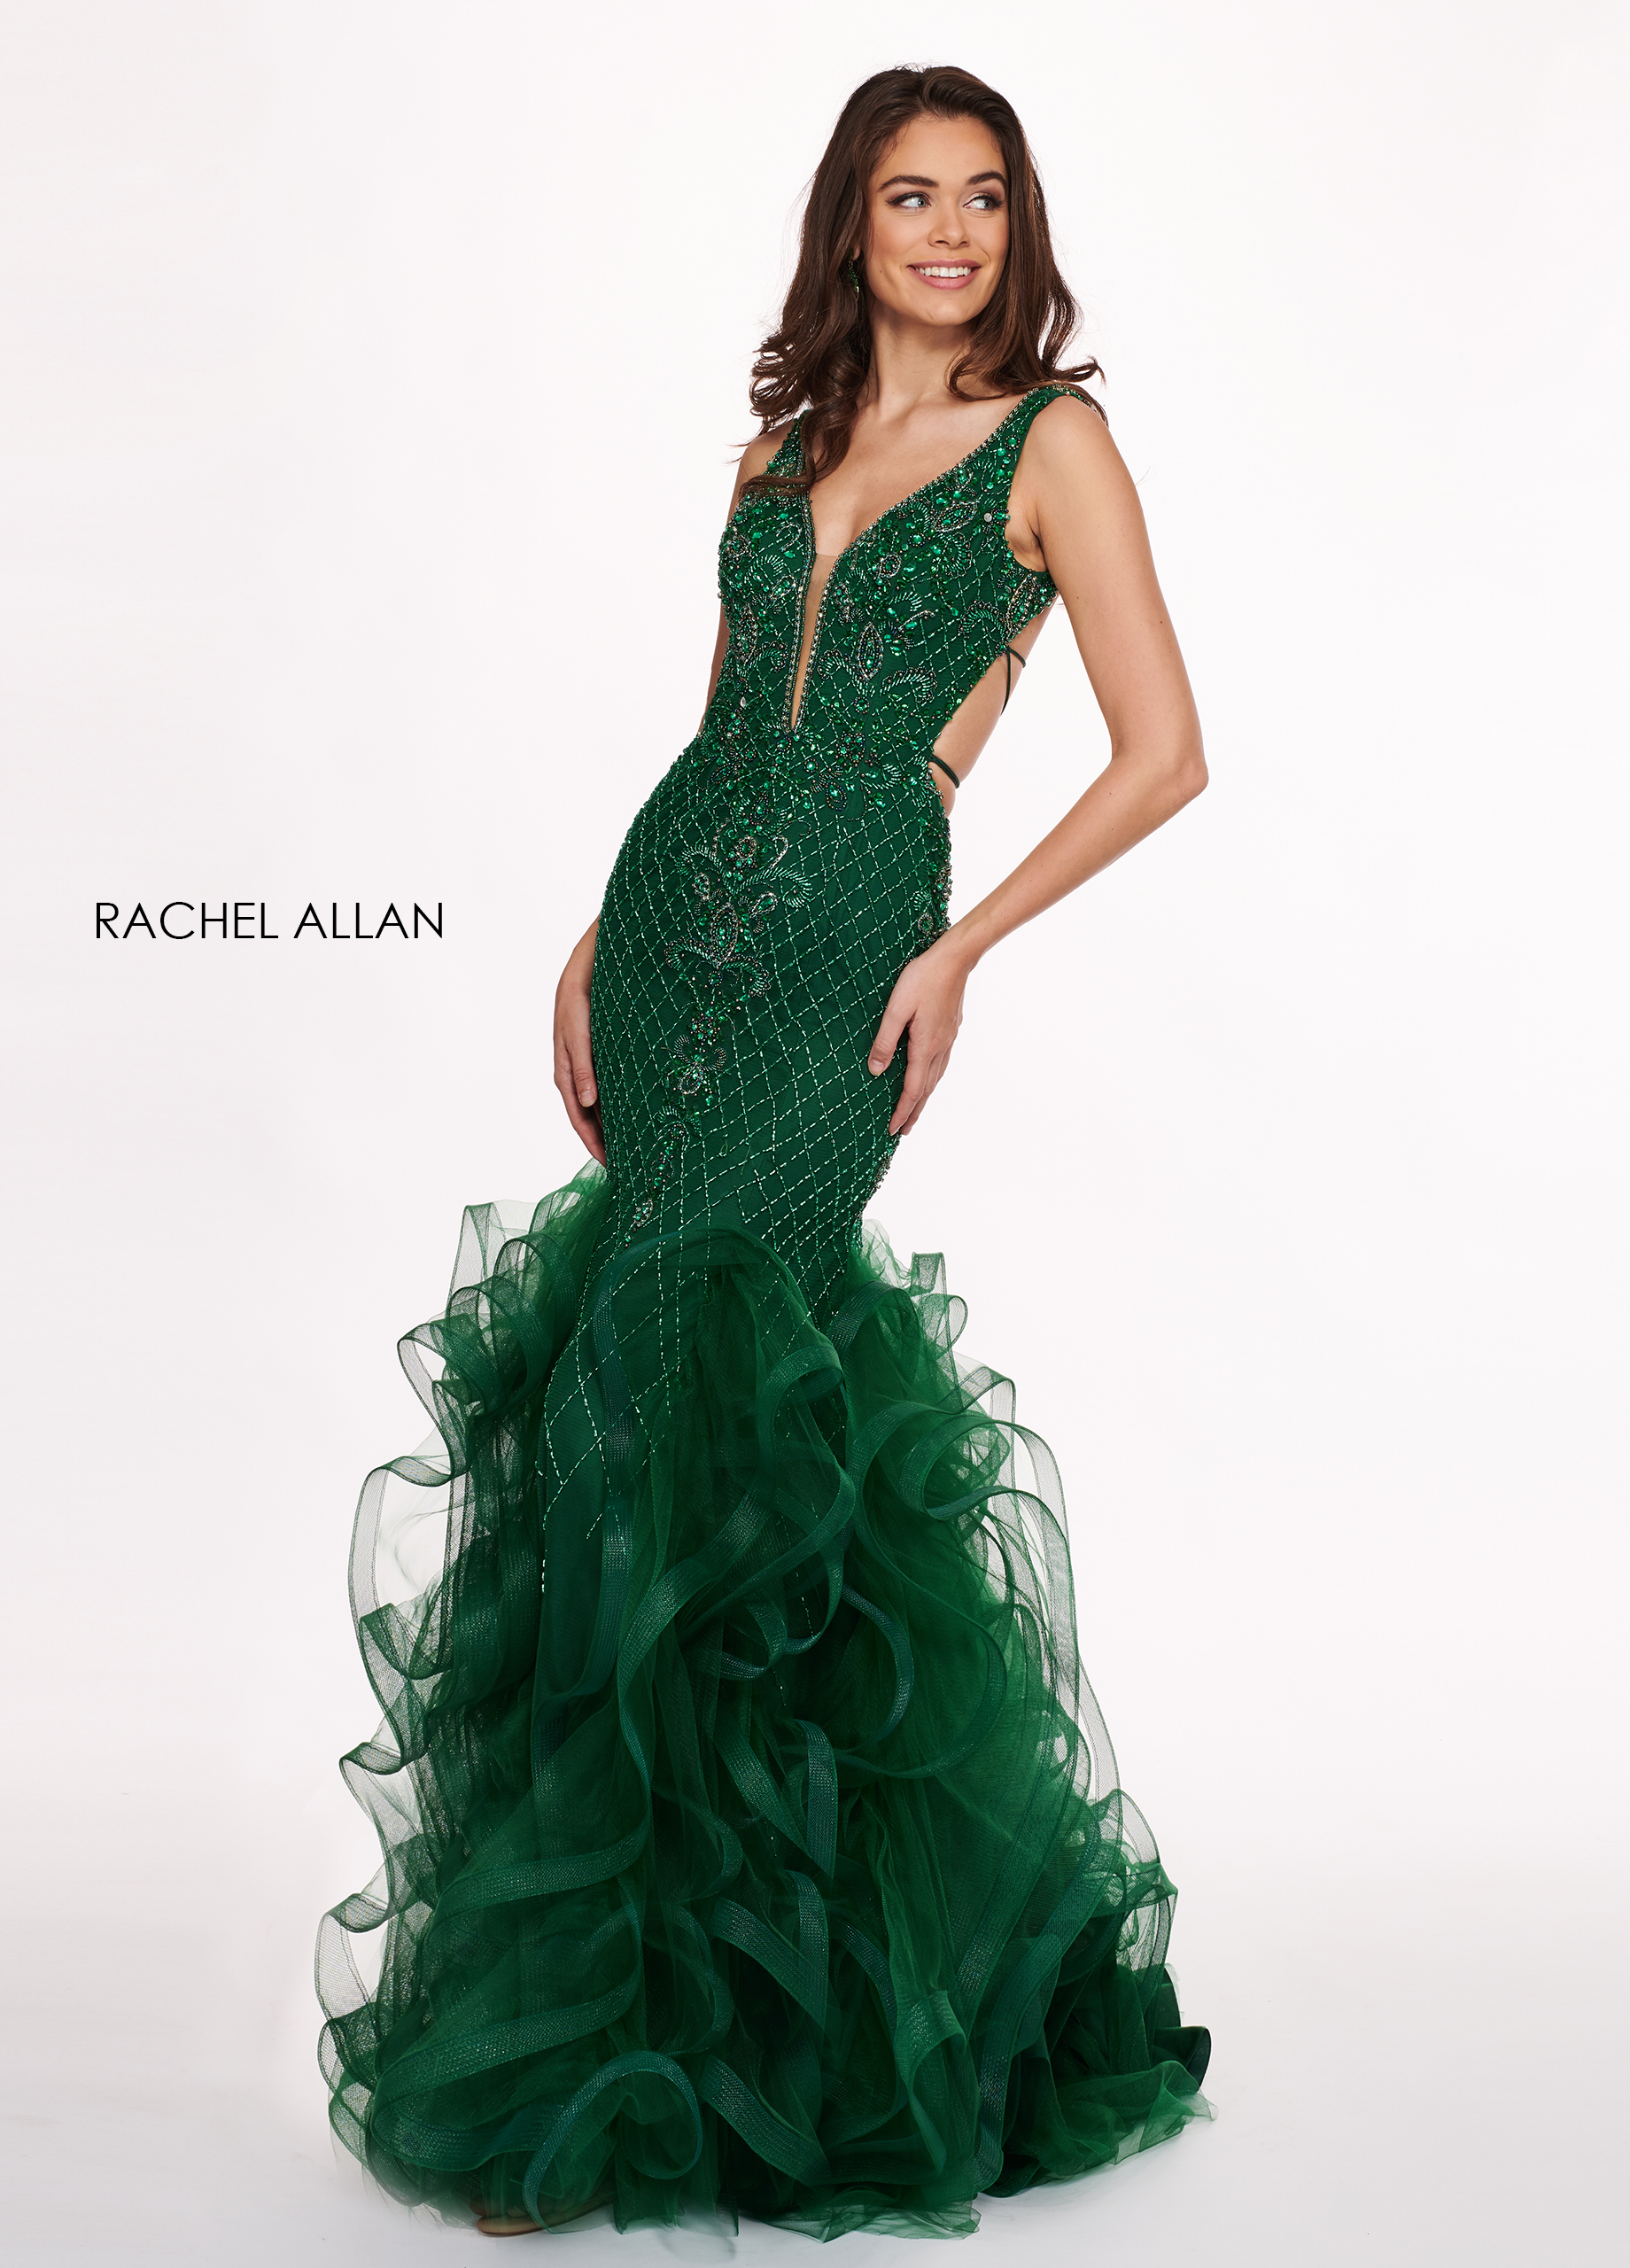 V-Neck Mermaid Prom Dresses in Emerald Color